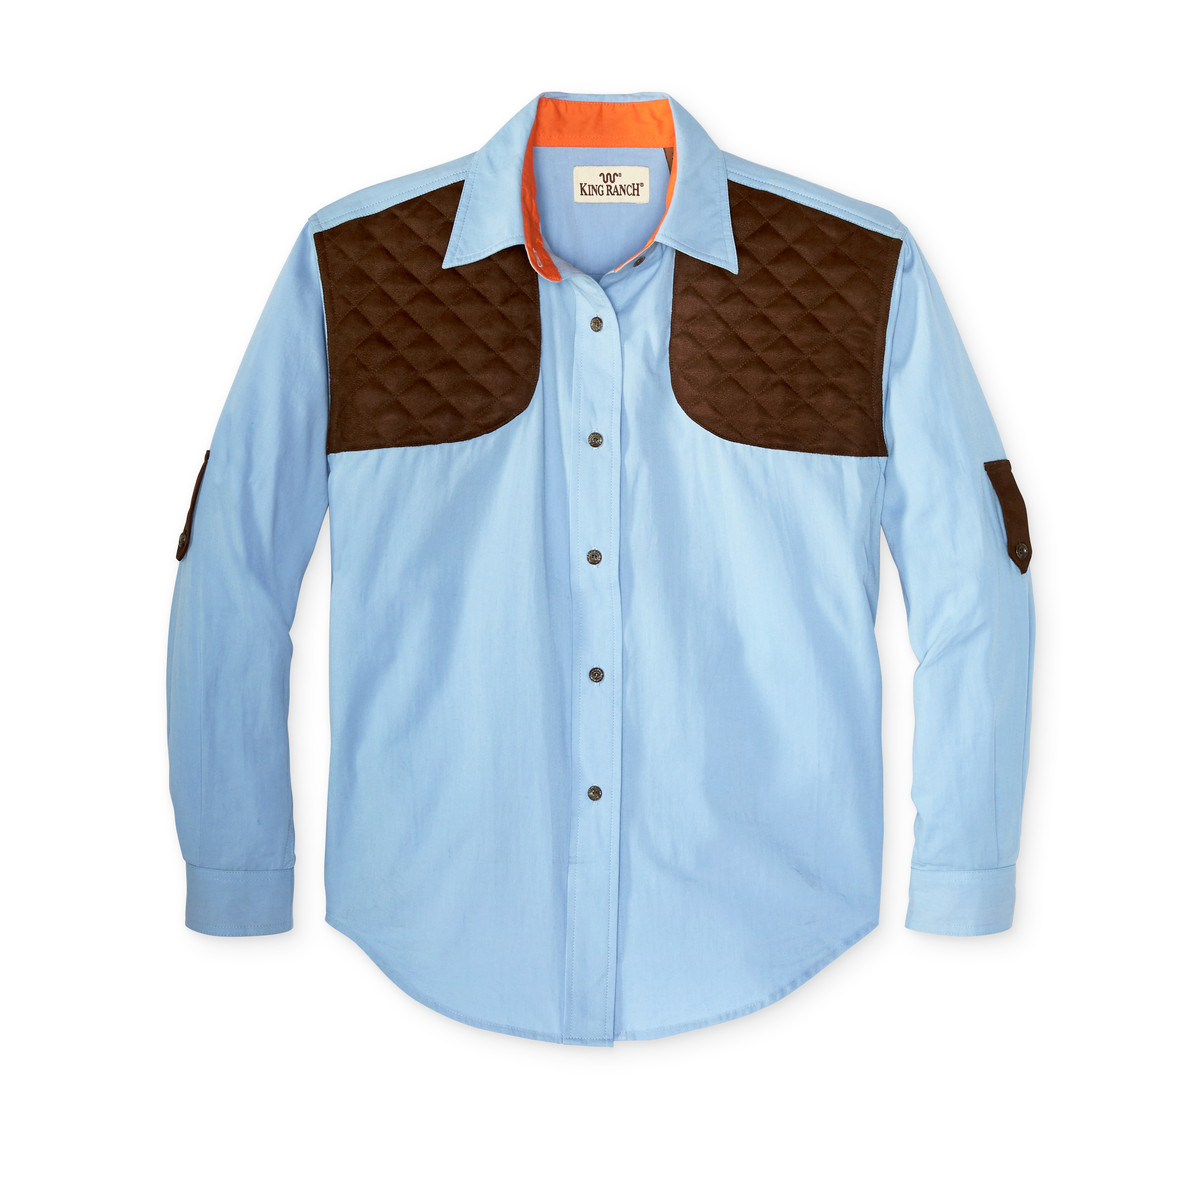 Ladies long sleeve western shirt